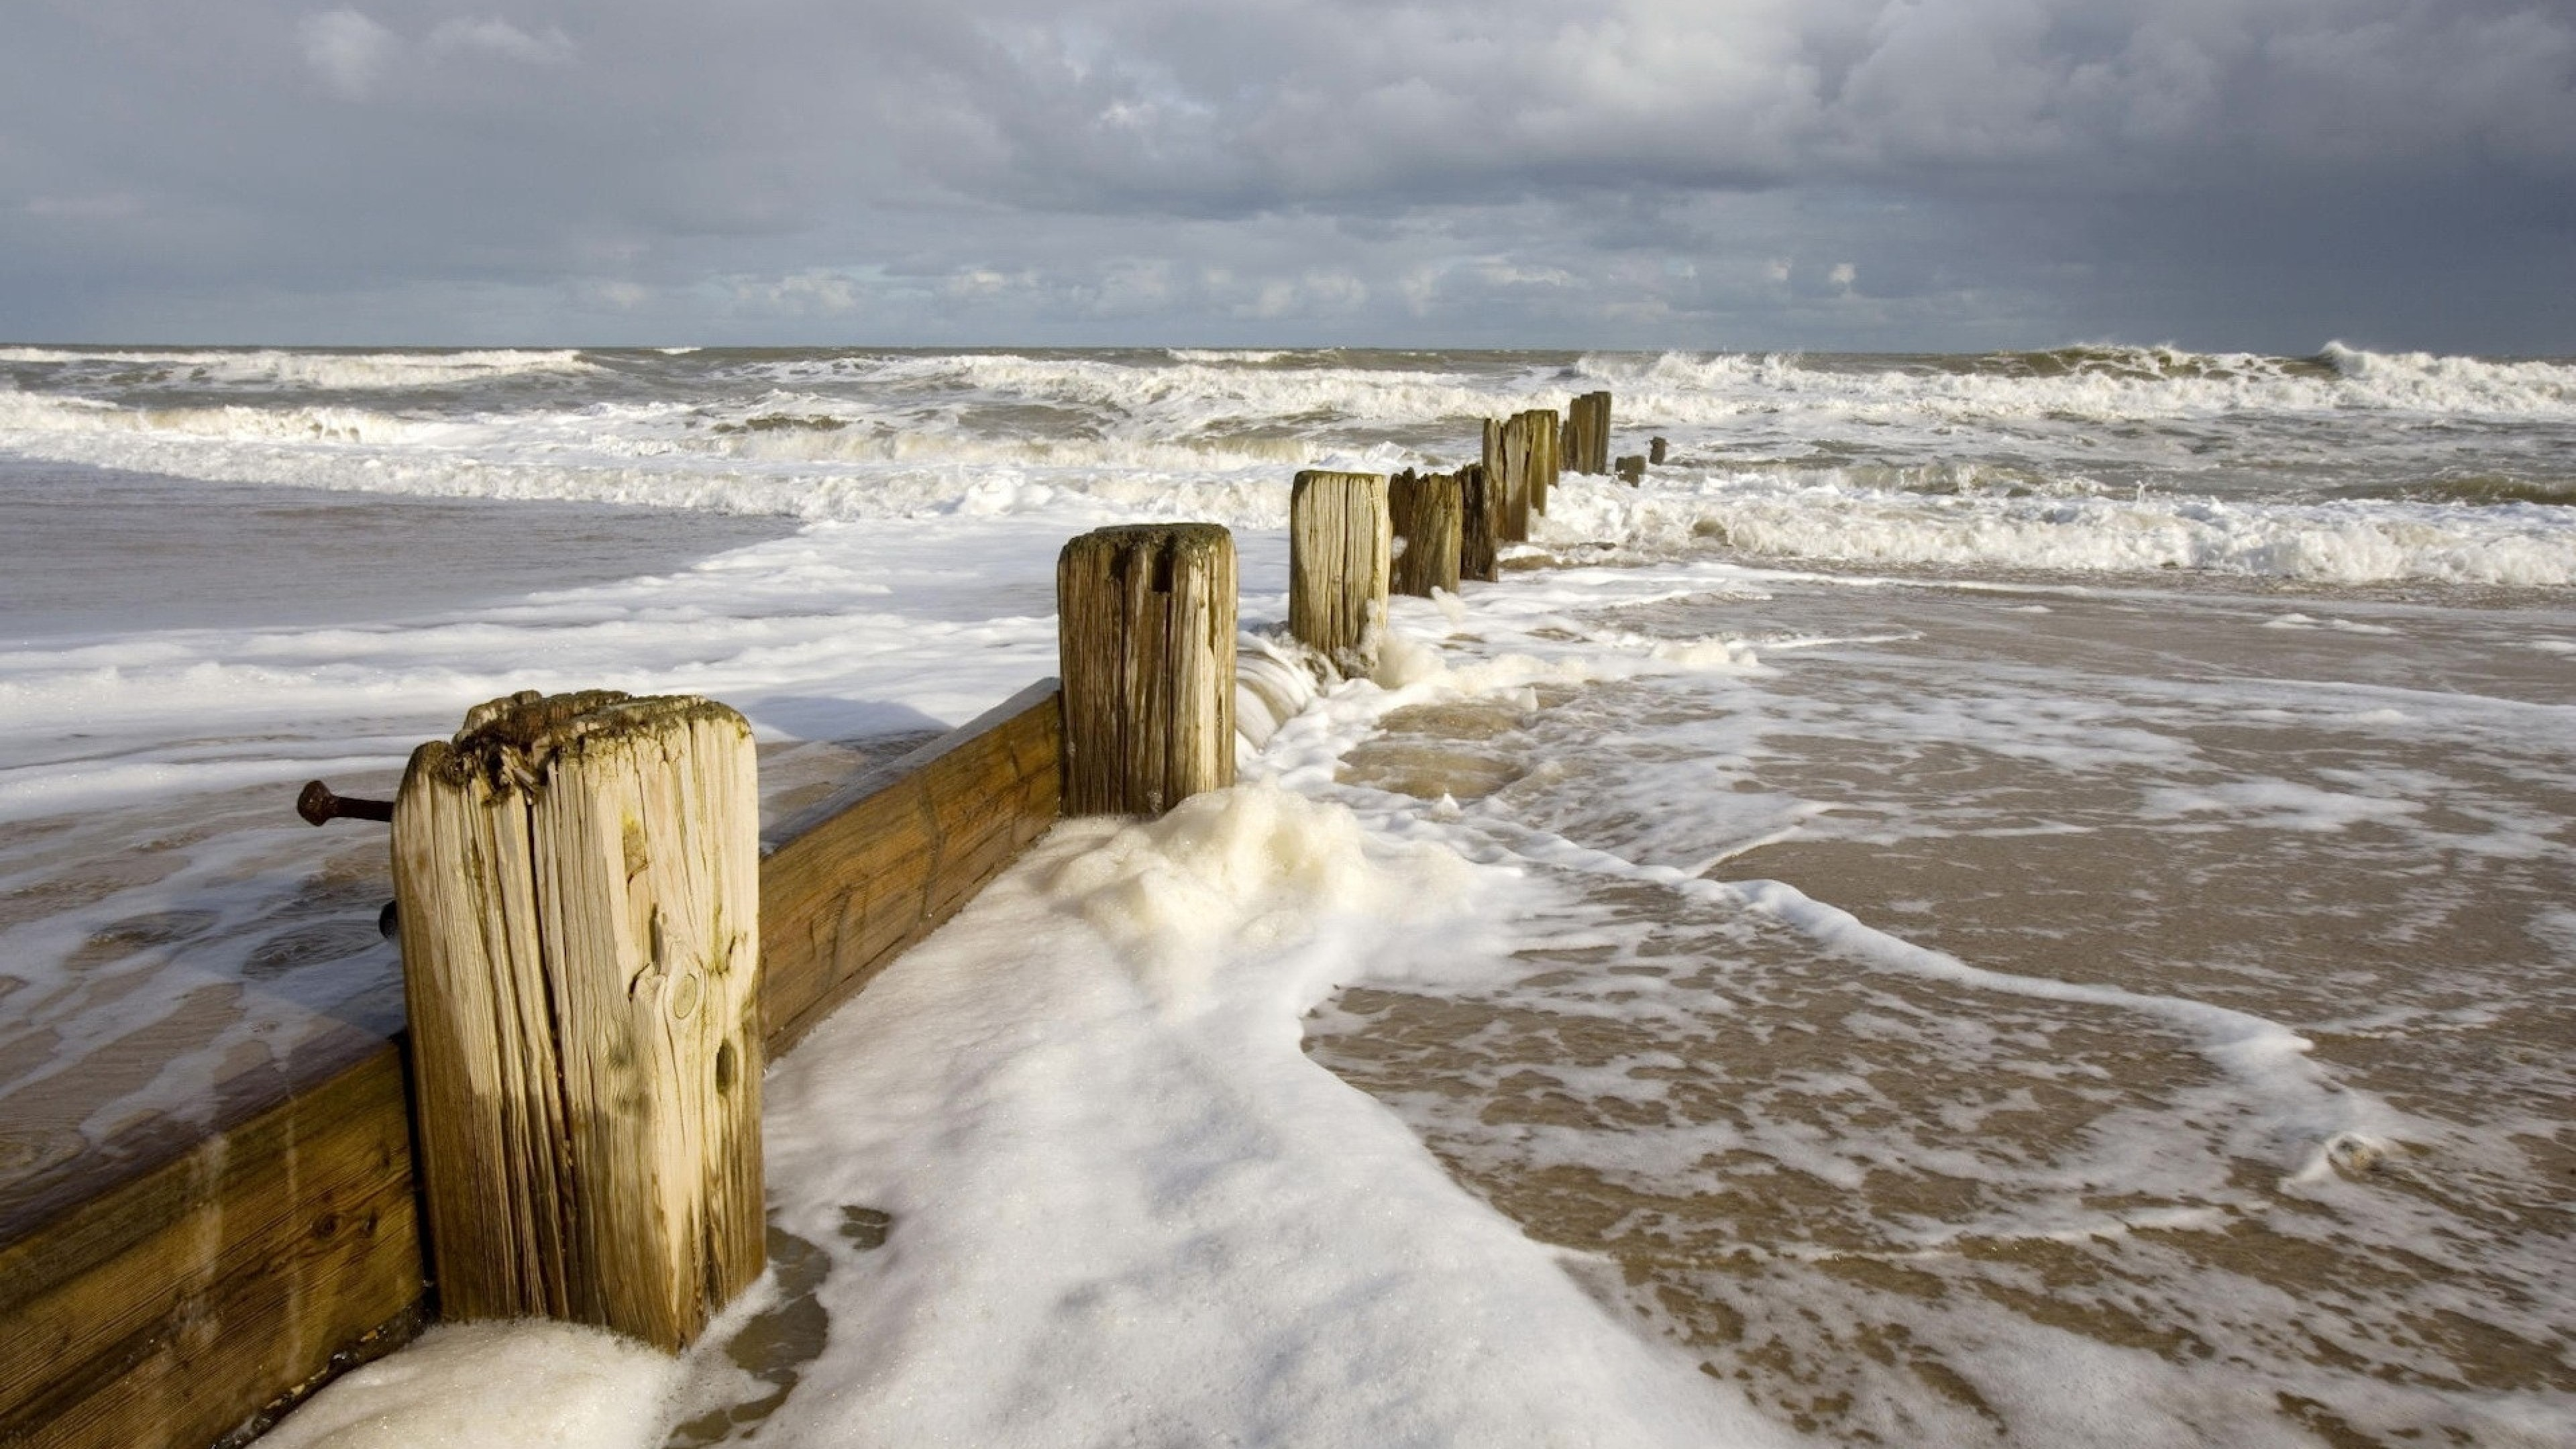 Preview wallpaper sea, storm, waves, dirty water, stakes, coast, foam